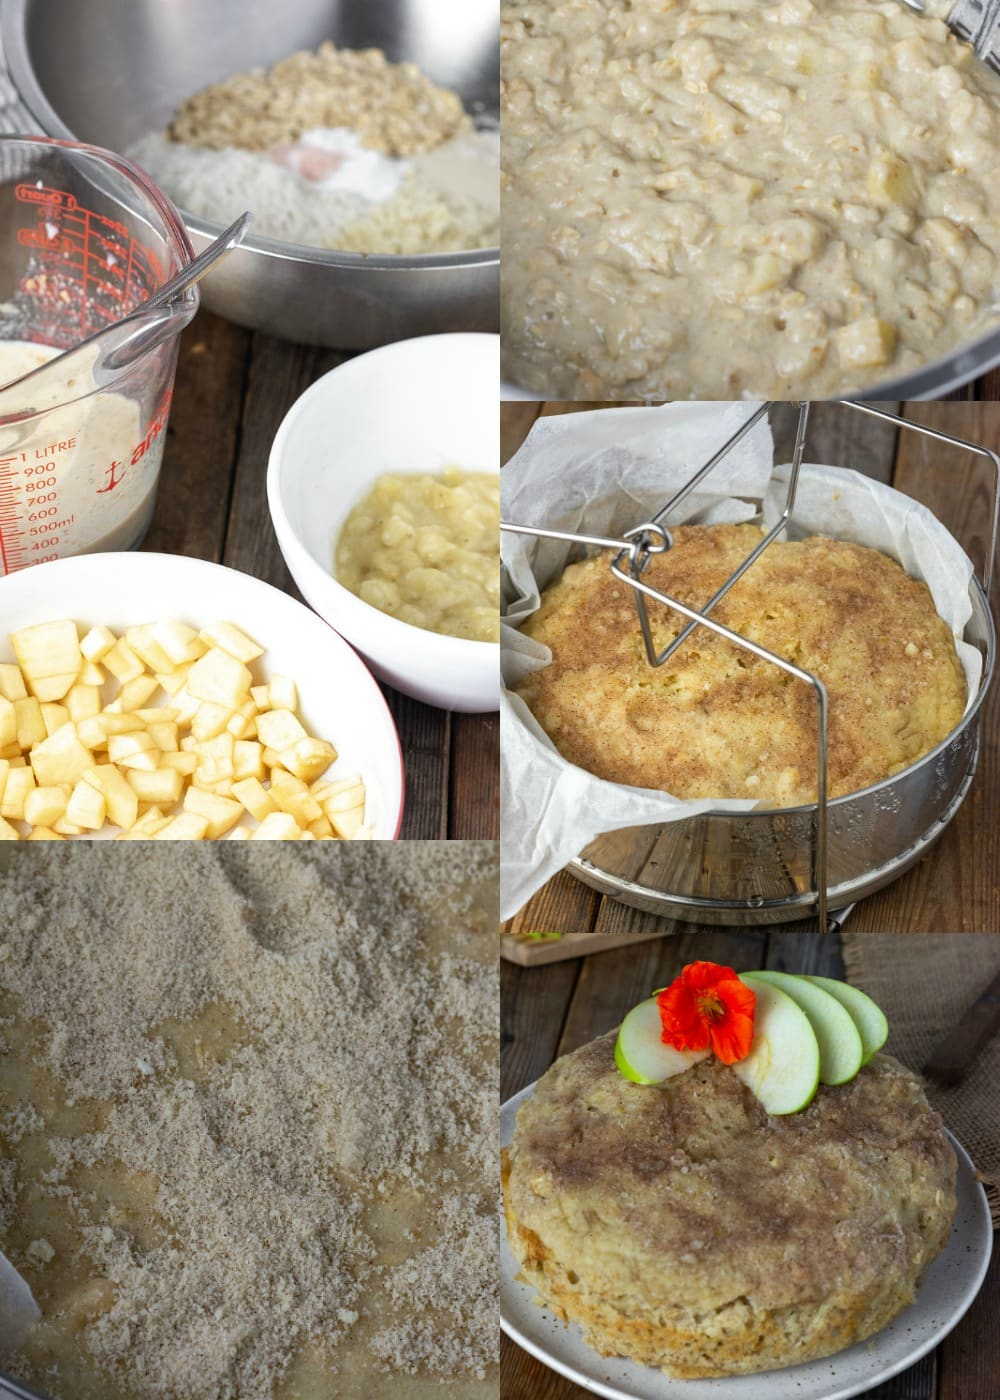 how to make instant pot apple cake step by step images